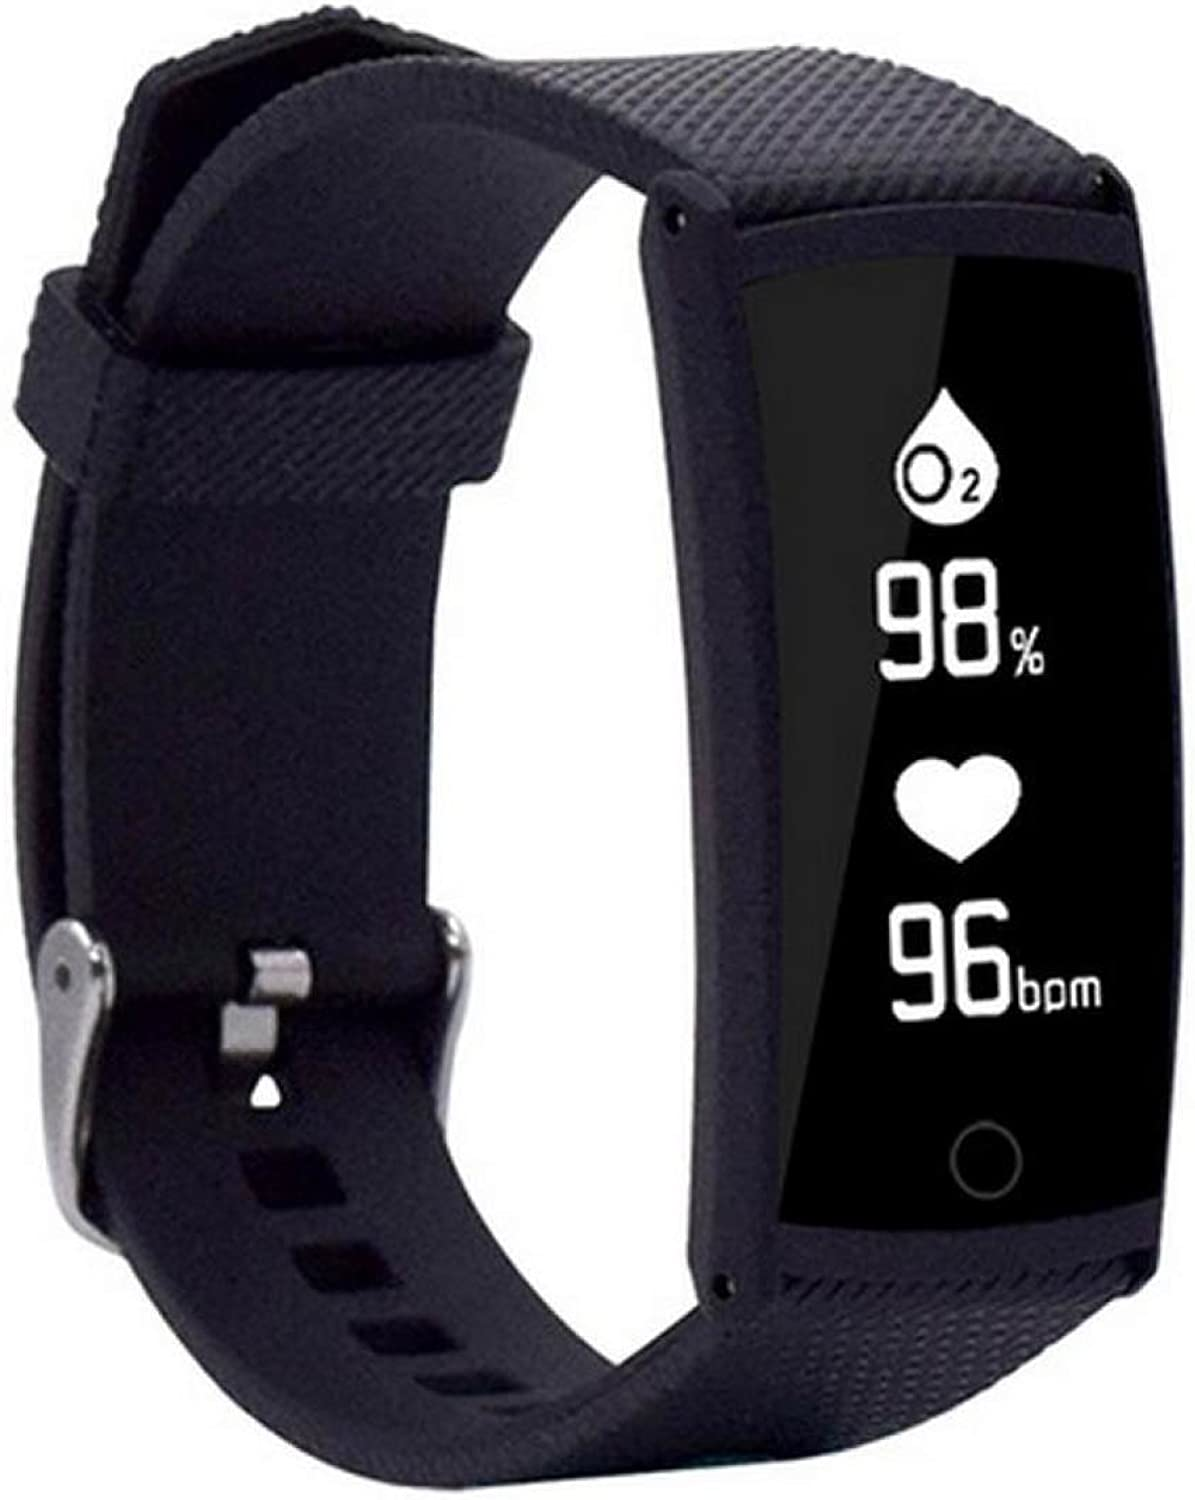 Blood Pressure Heart Rate Blood Oxygen Test Sleep Sedentary Reminder Call Reminders Calorie Step Smart Bracelet Smart Watch,BlackOneSize